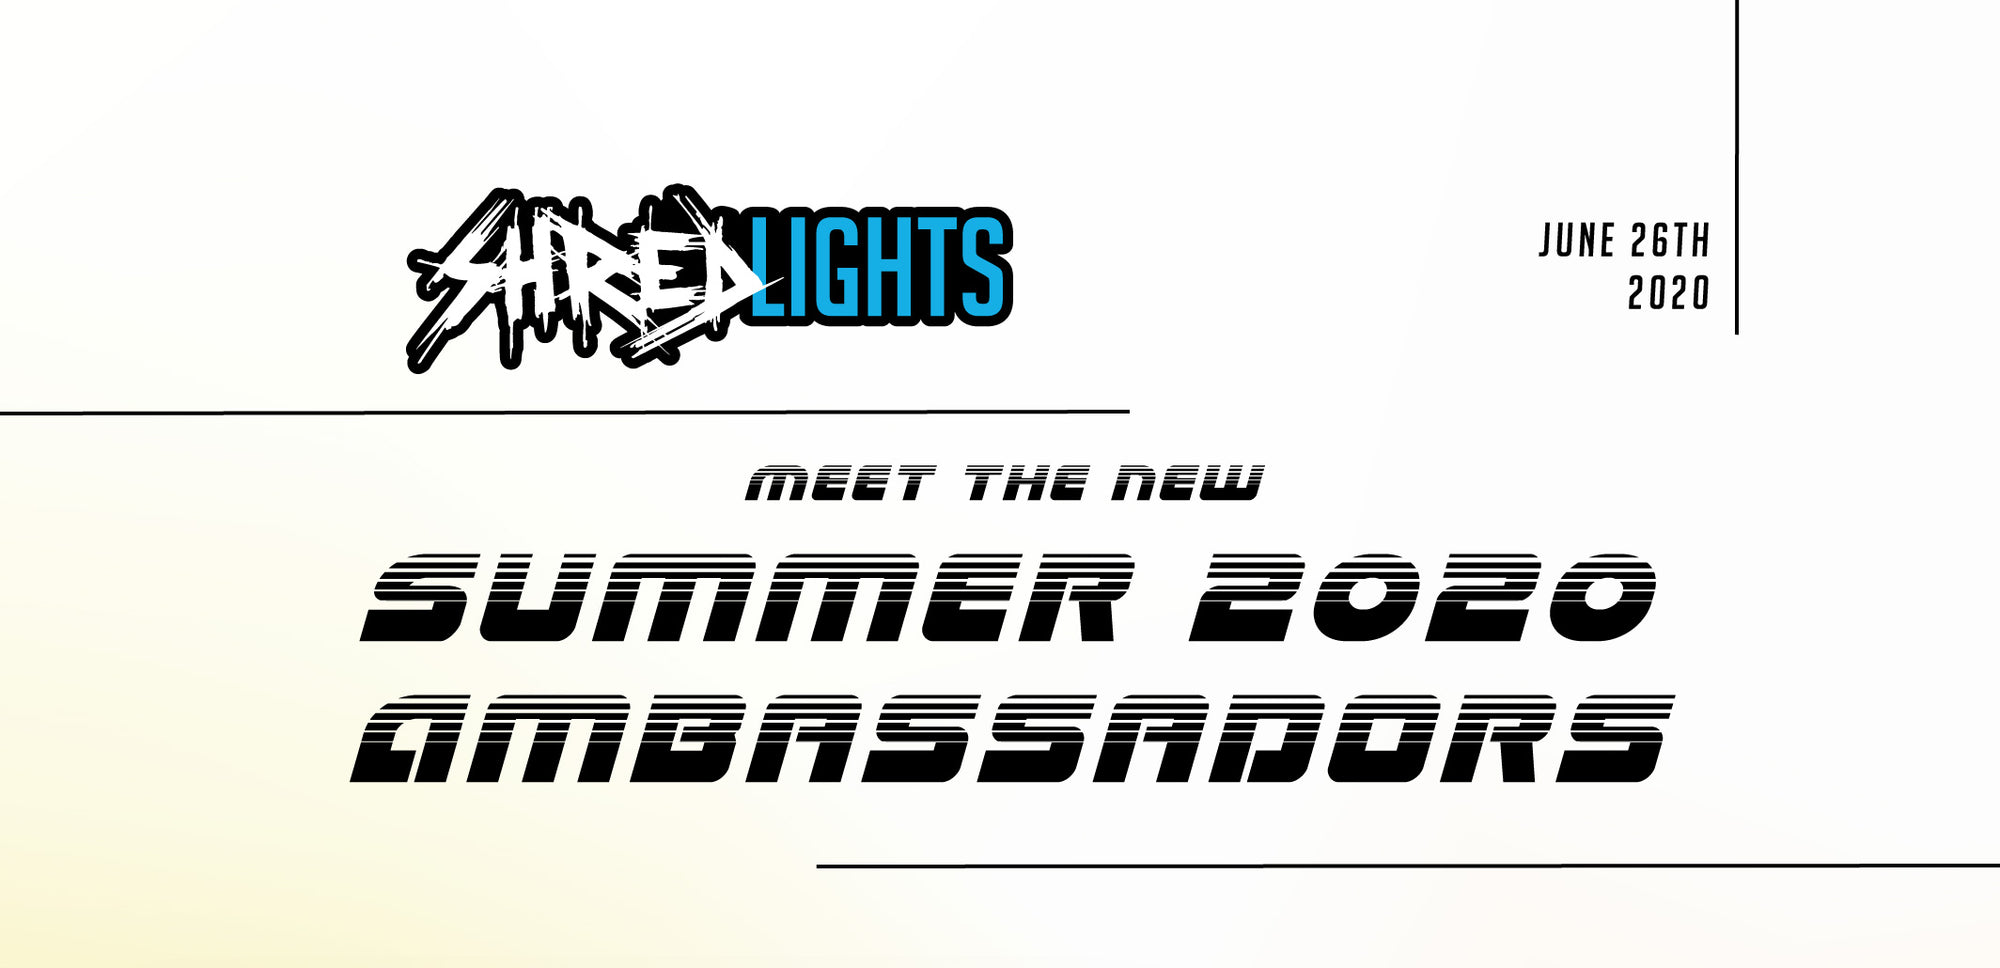 Meet the new Summer 2020 Ambassadors